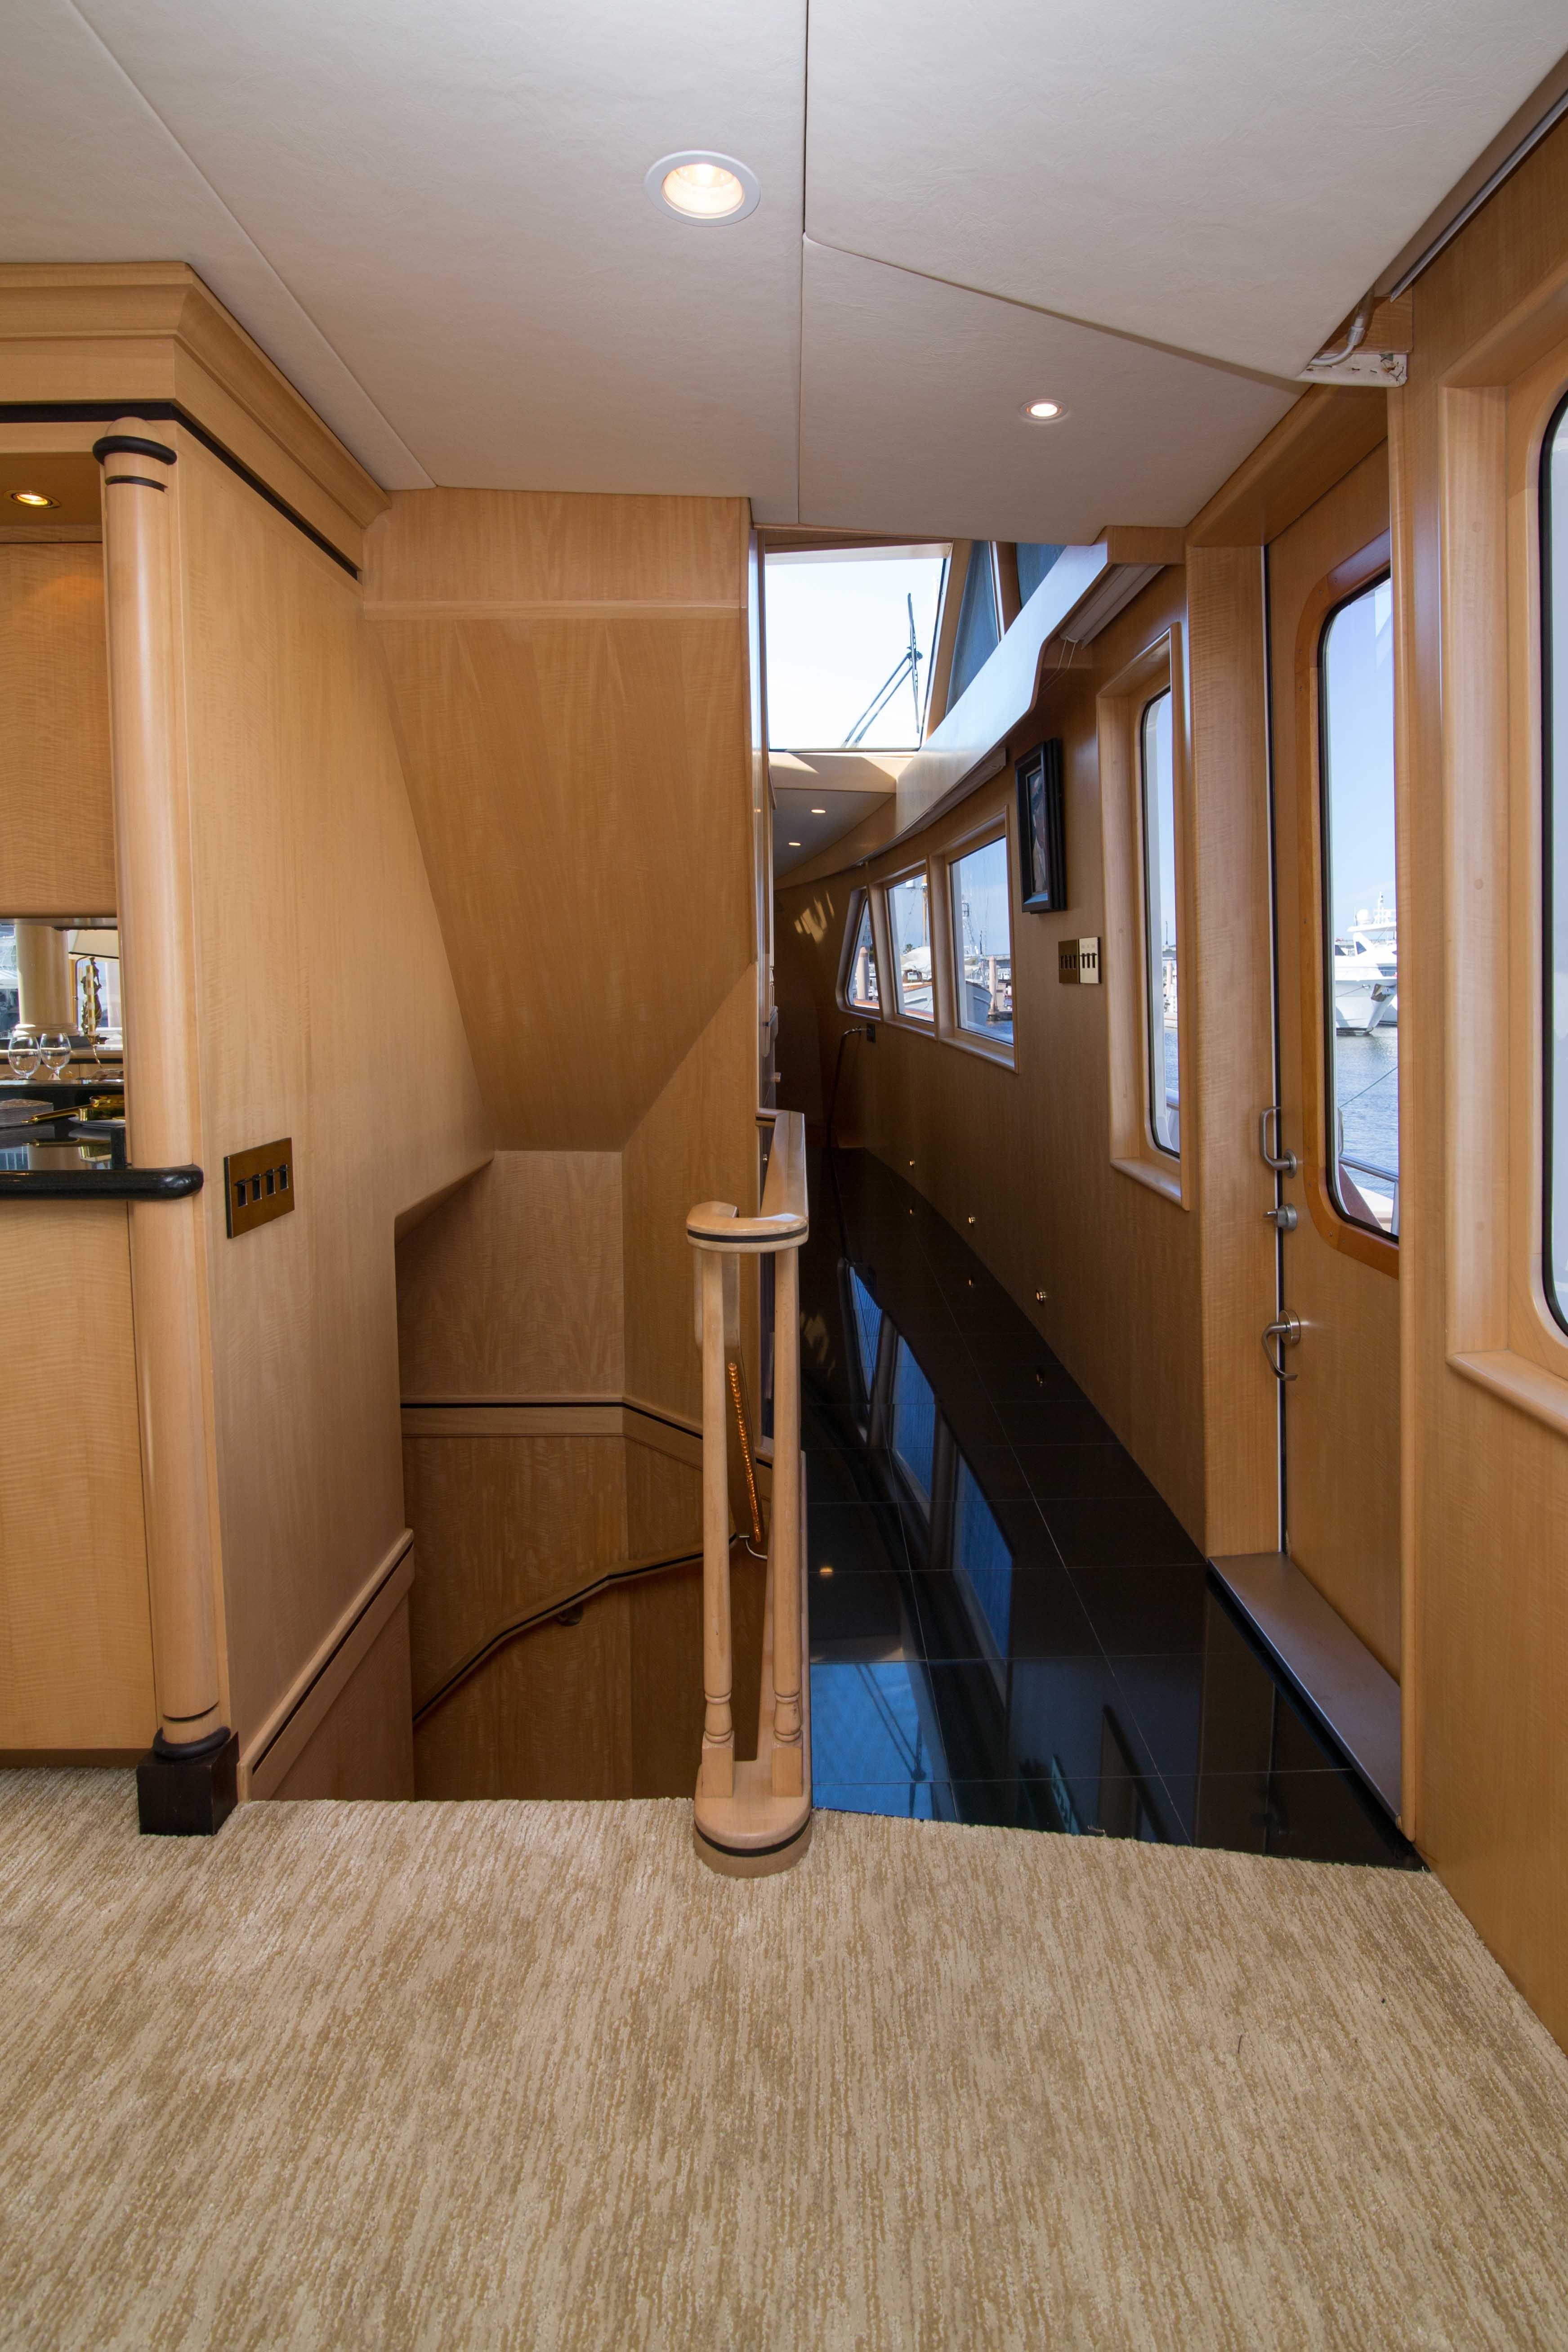 85 Burger To Helm or Staterooms